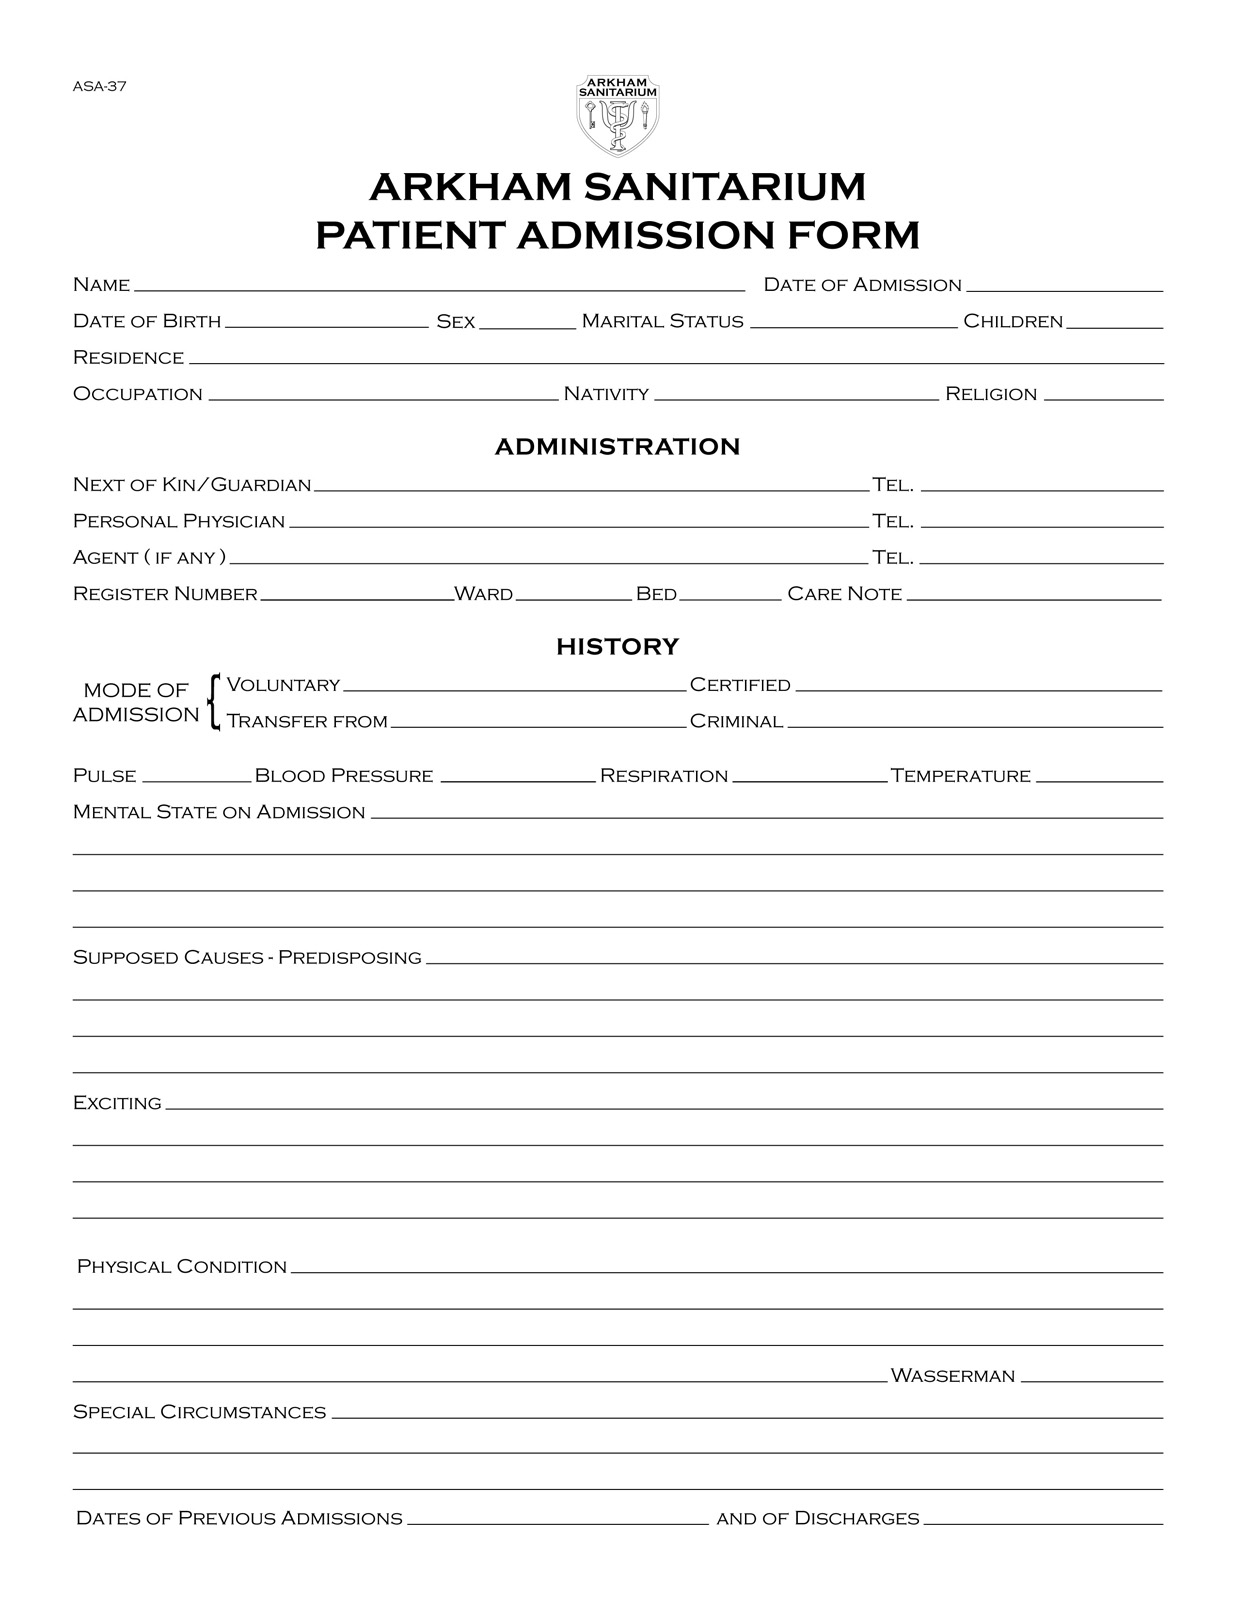 Propnomicon: Arkham Sanitarium Patient Admission Form